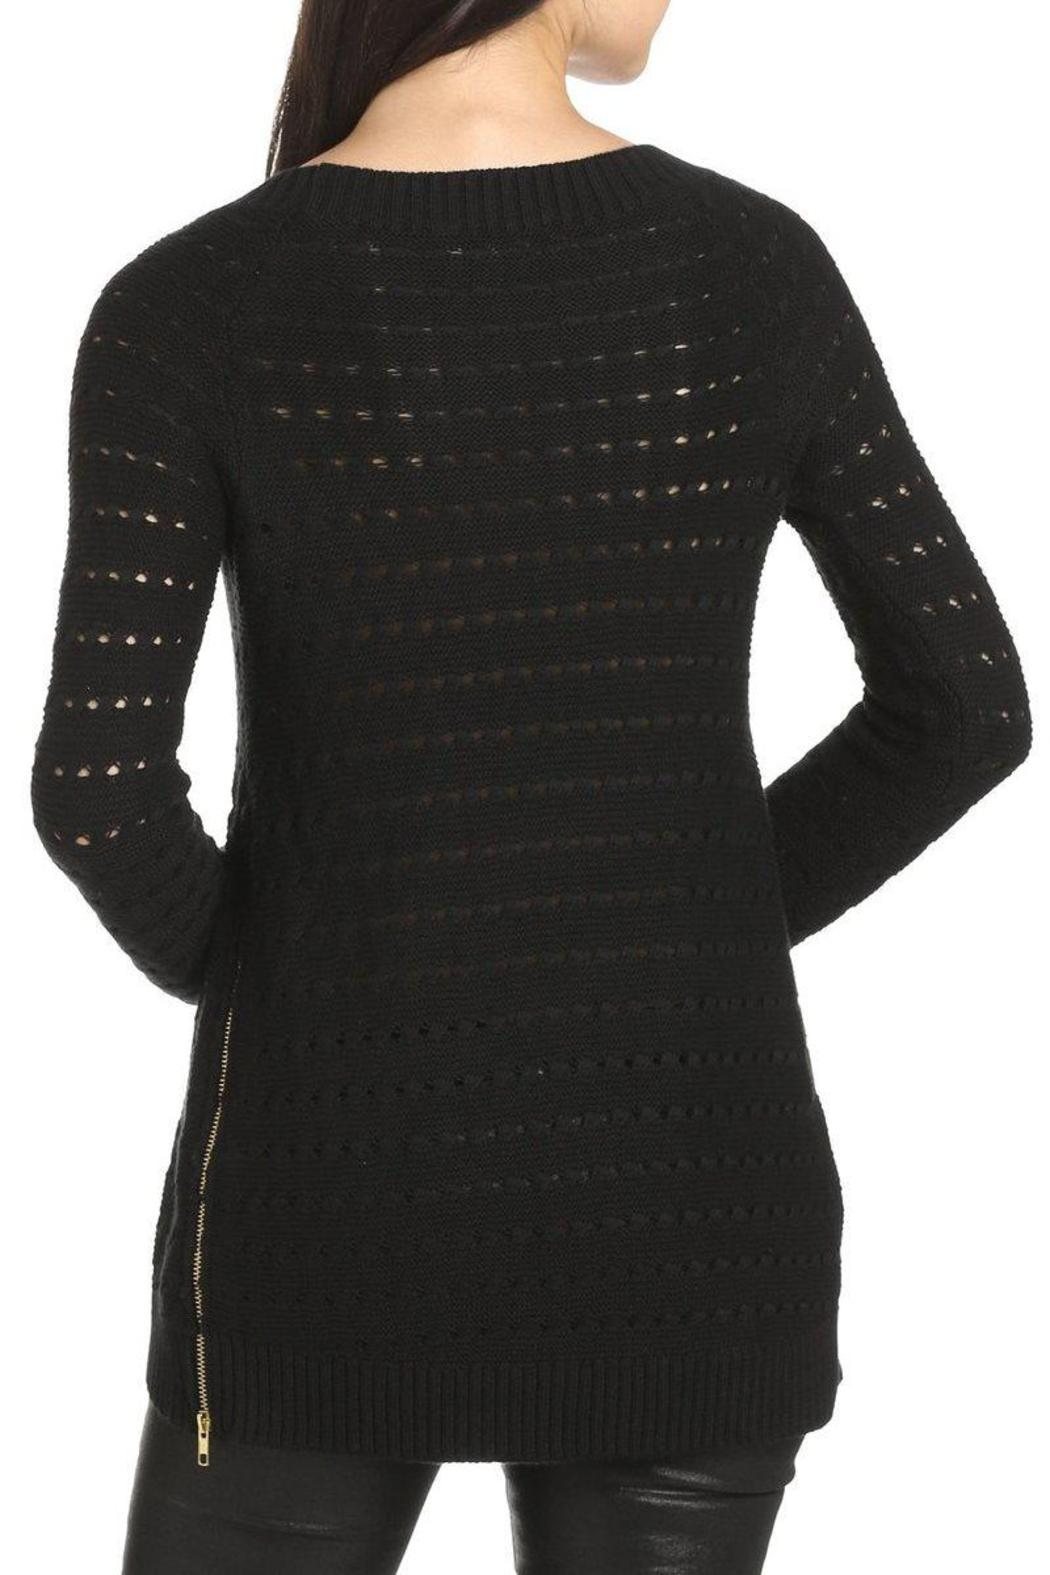 BCBGeneration Knit Sweater - Front Full Image